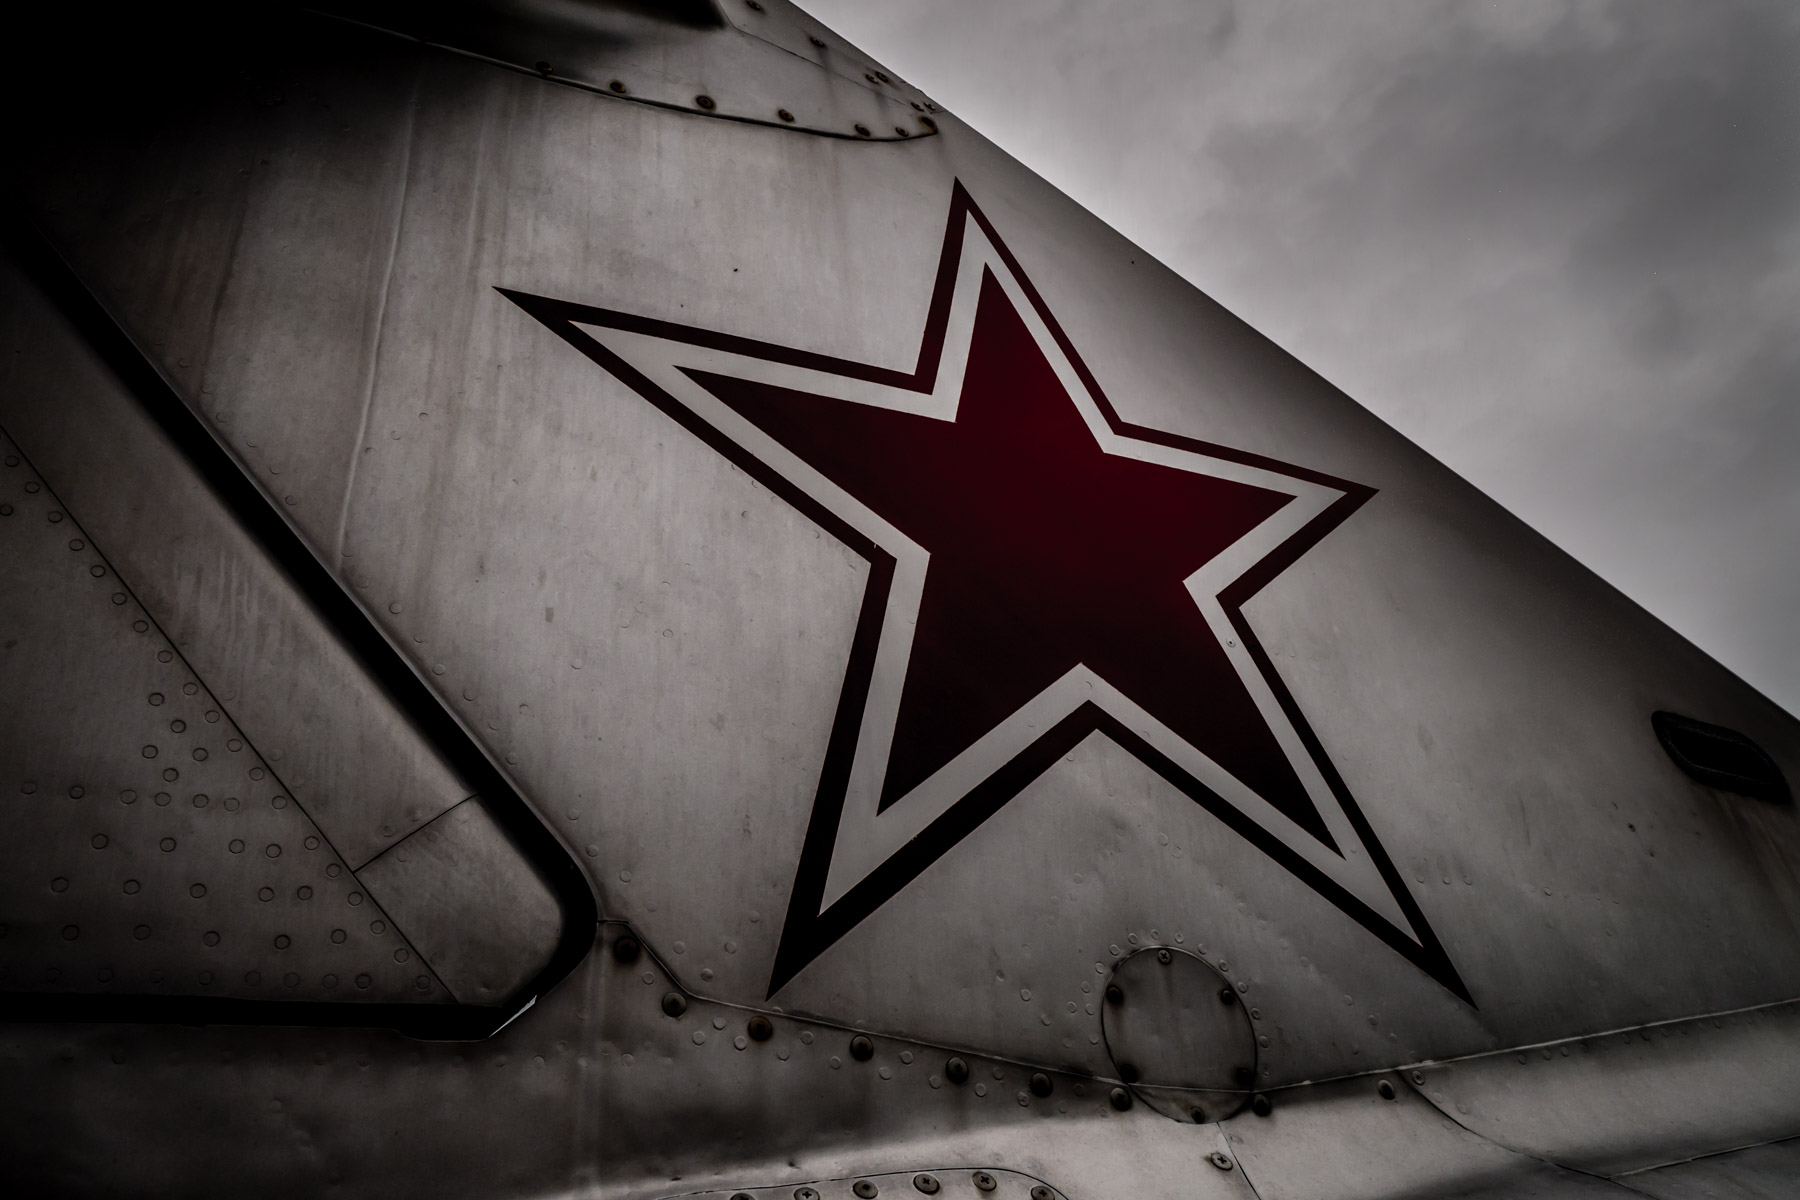 A Soviet-style red star on the tail of a former Polish Air Force MiG-17F in the collection of the Cavanaugh Flight Museum, Addison, Texas.